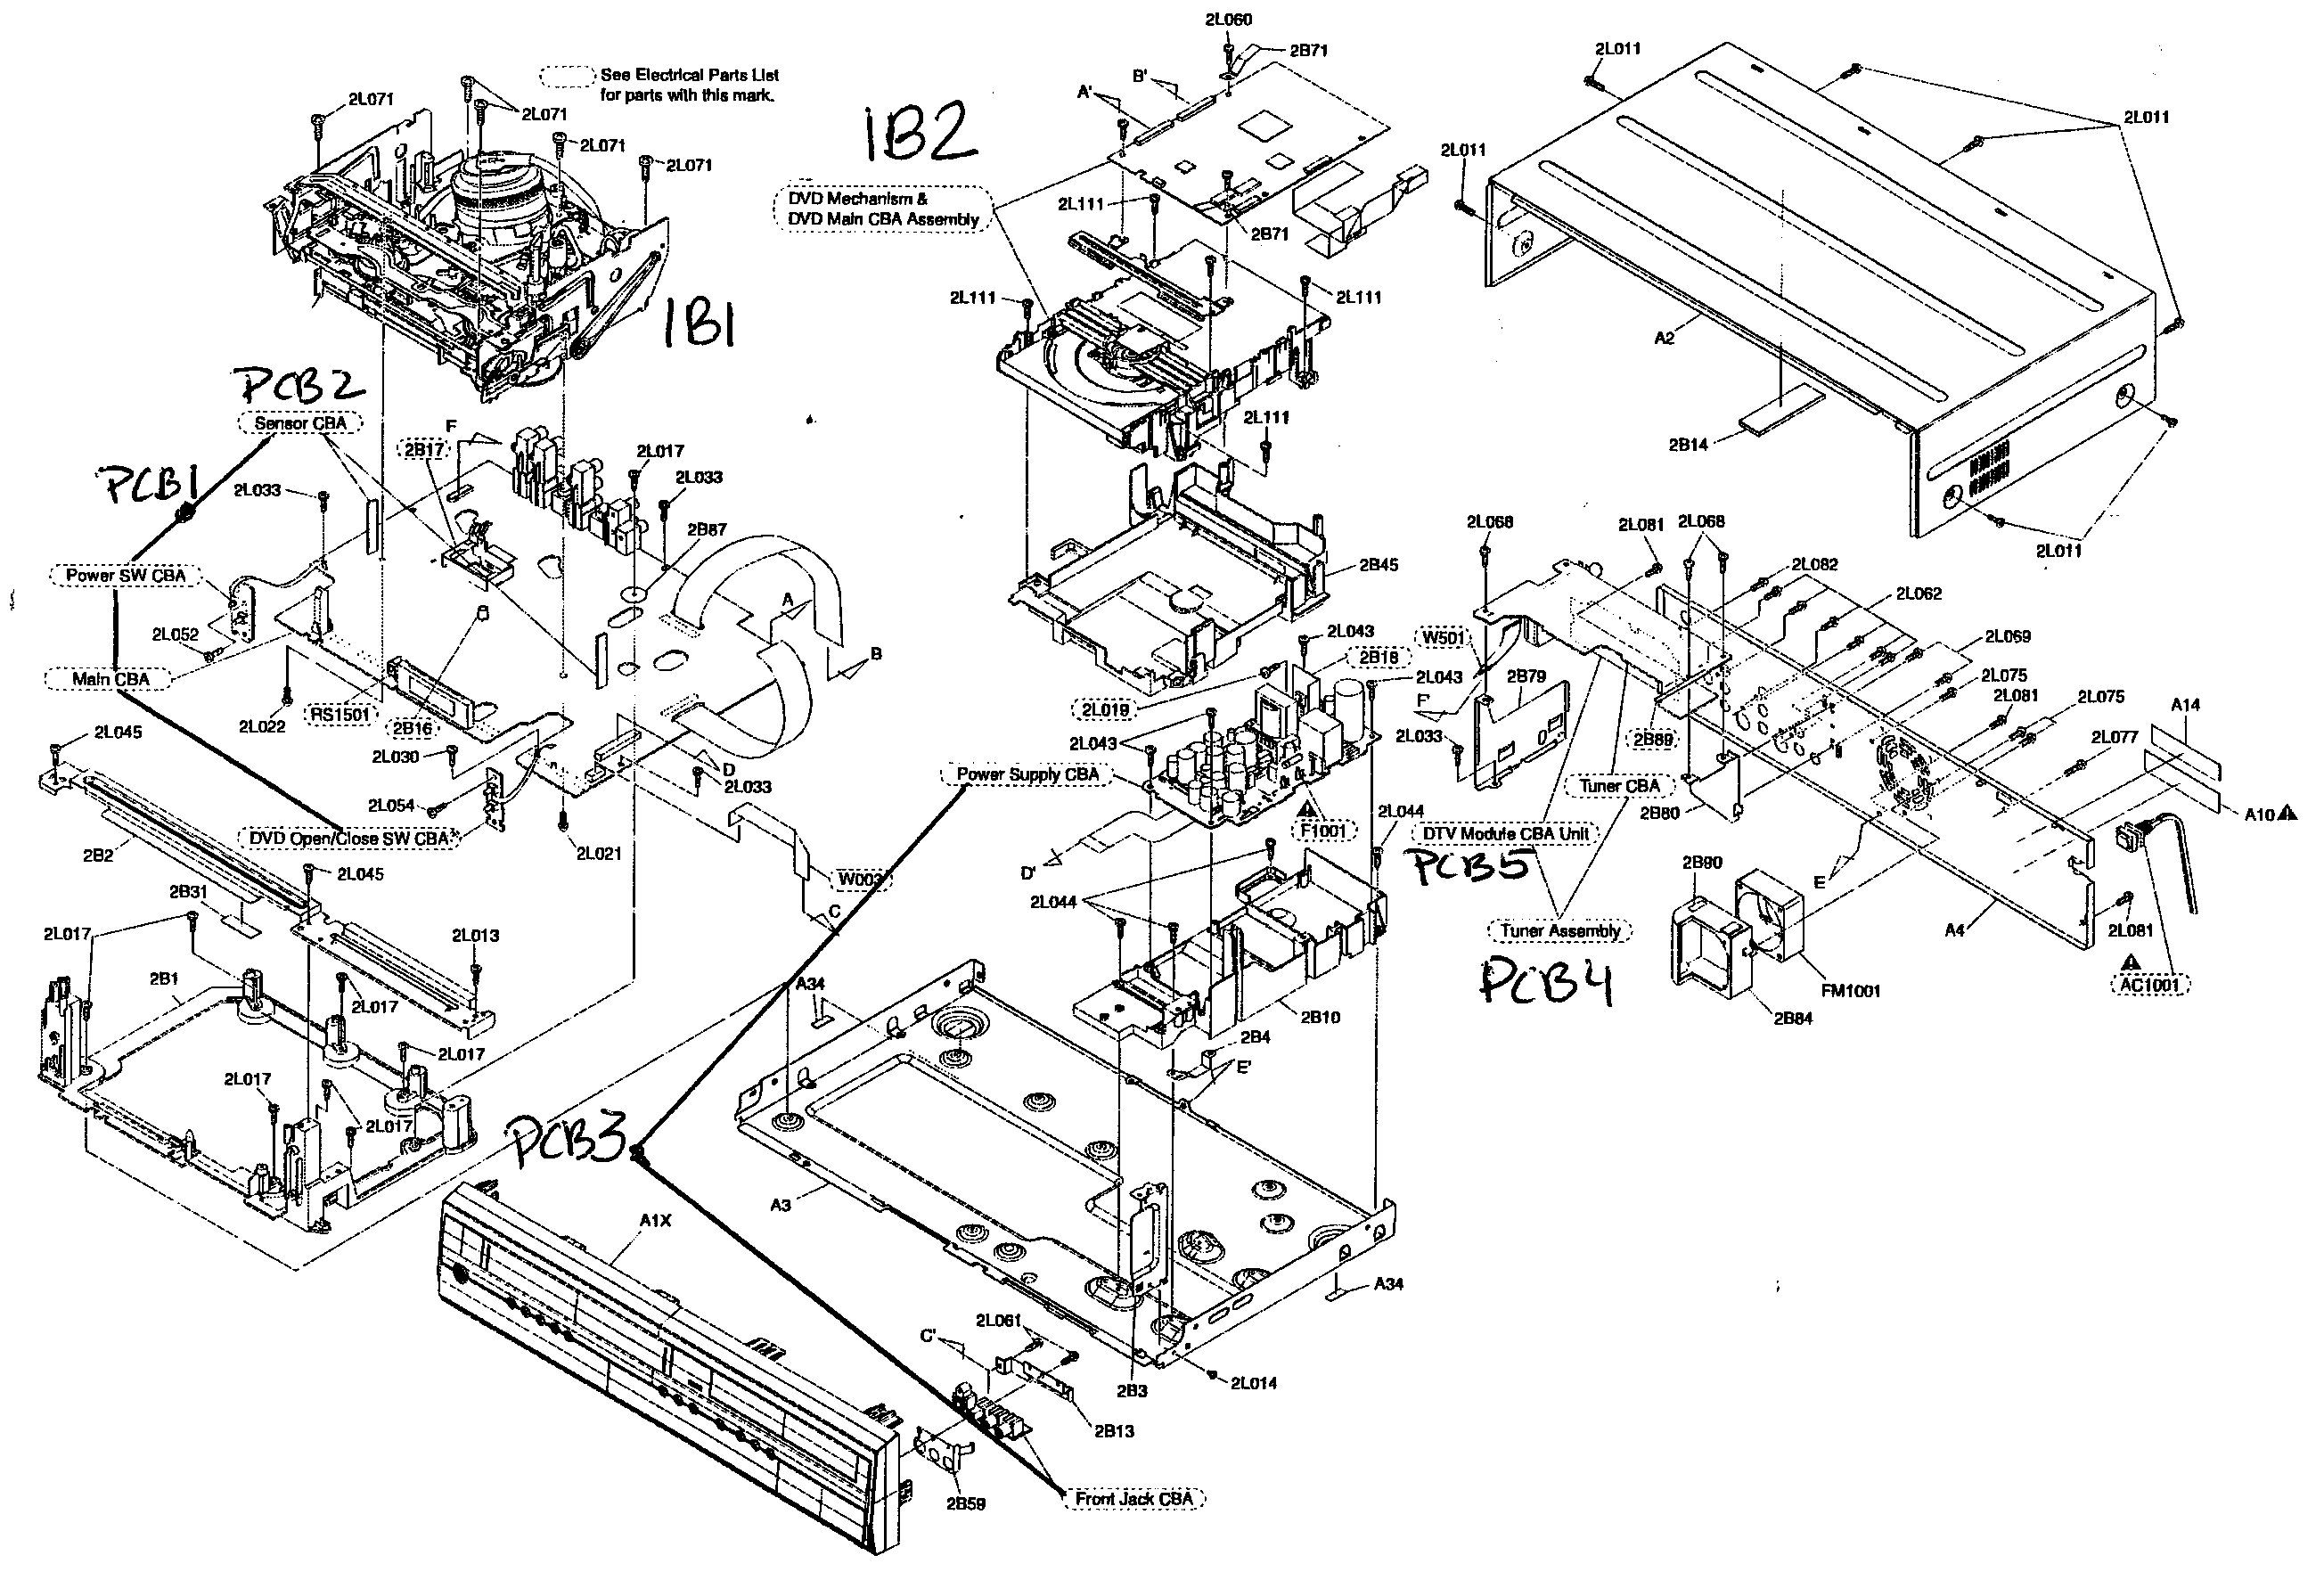 CABINET ASSY Diagram & Parts List for Model ZV457MG9